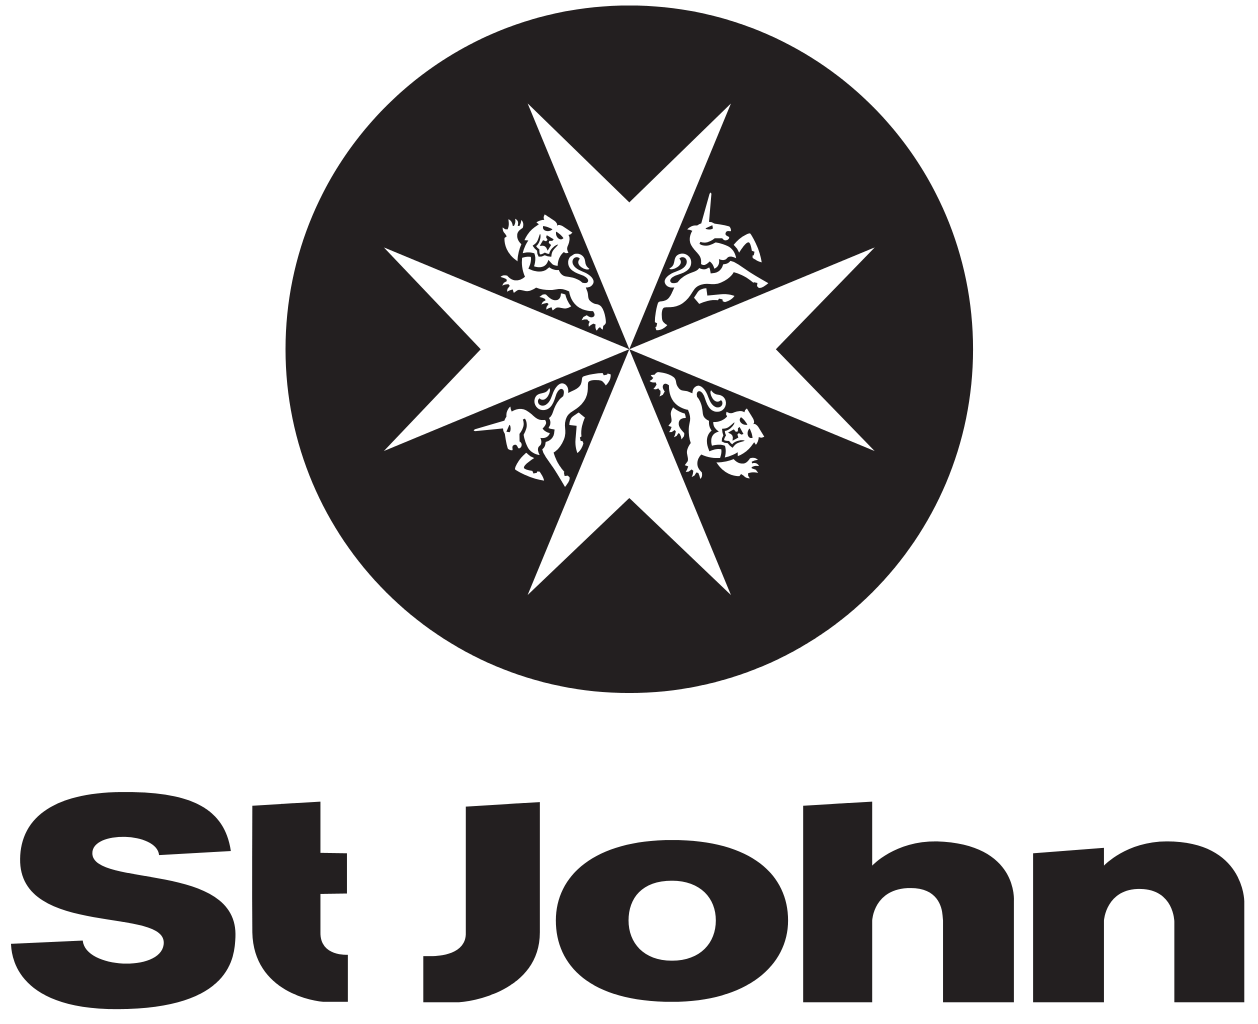 St_John_New_Zealand_logo